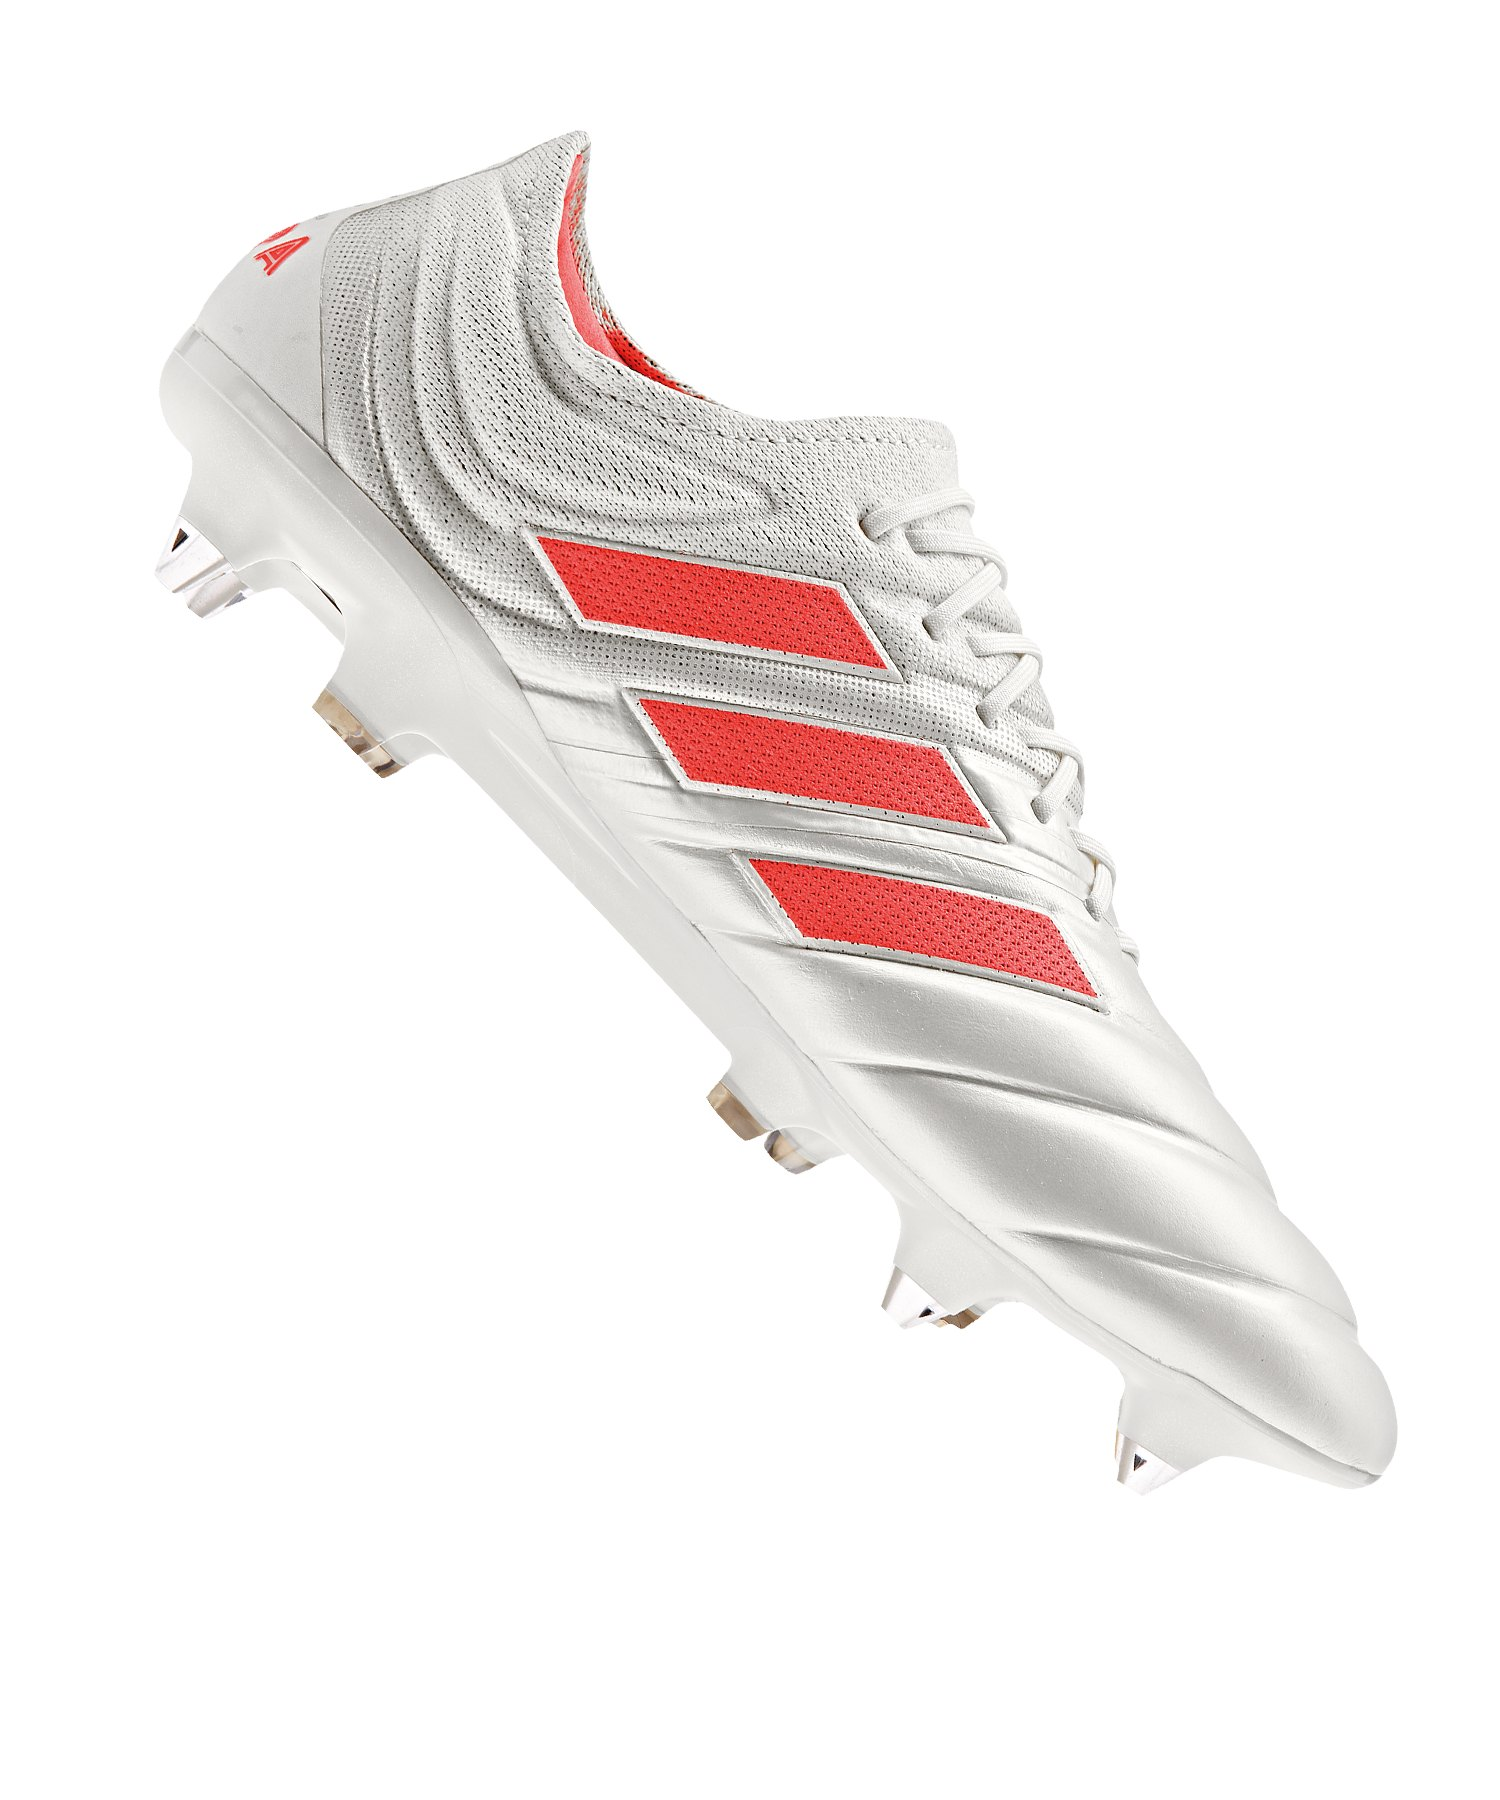 adidas COPA 19.1 SG Weiss Rot